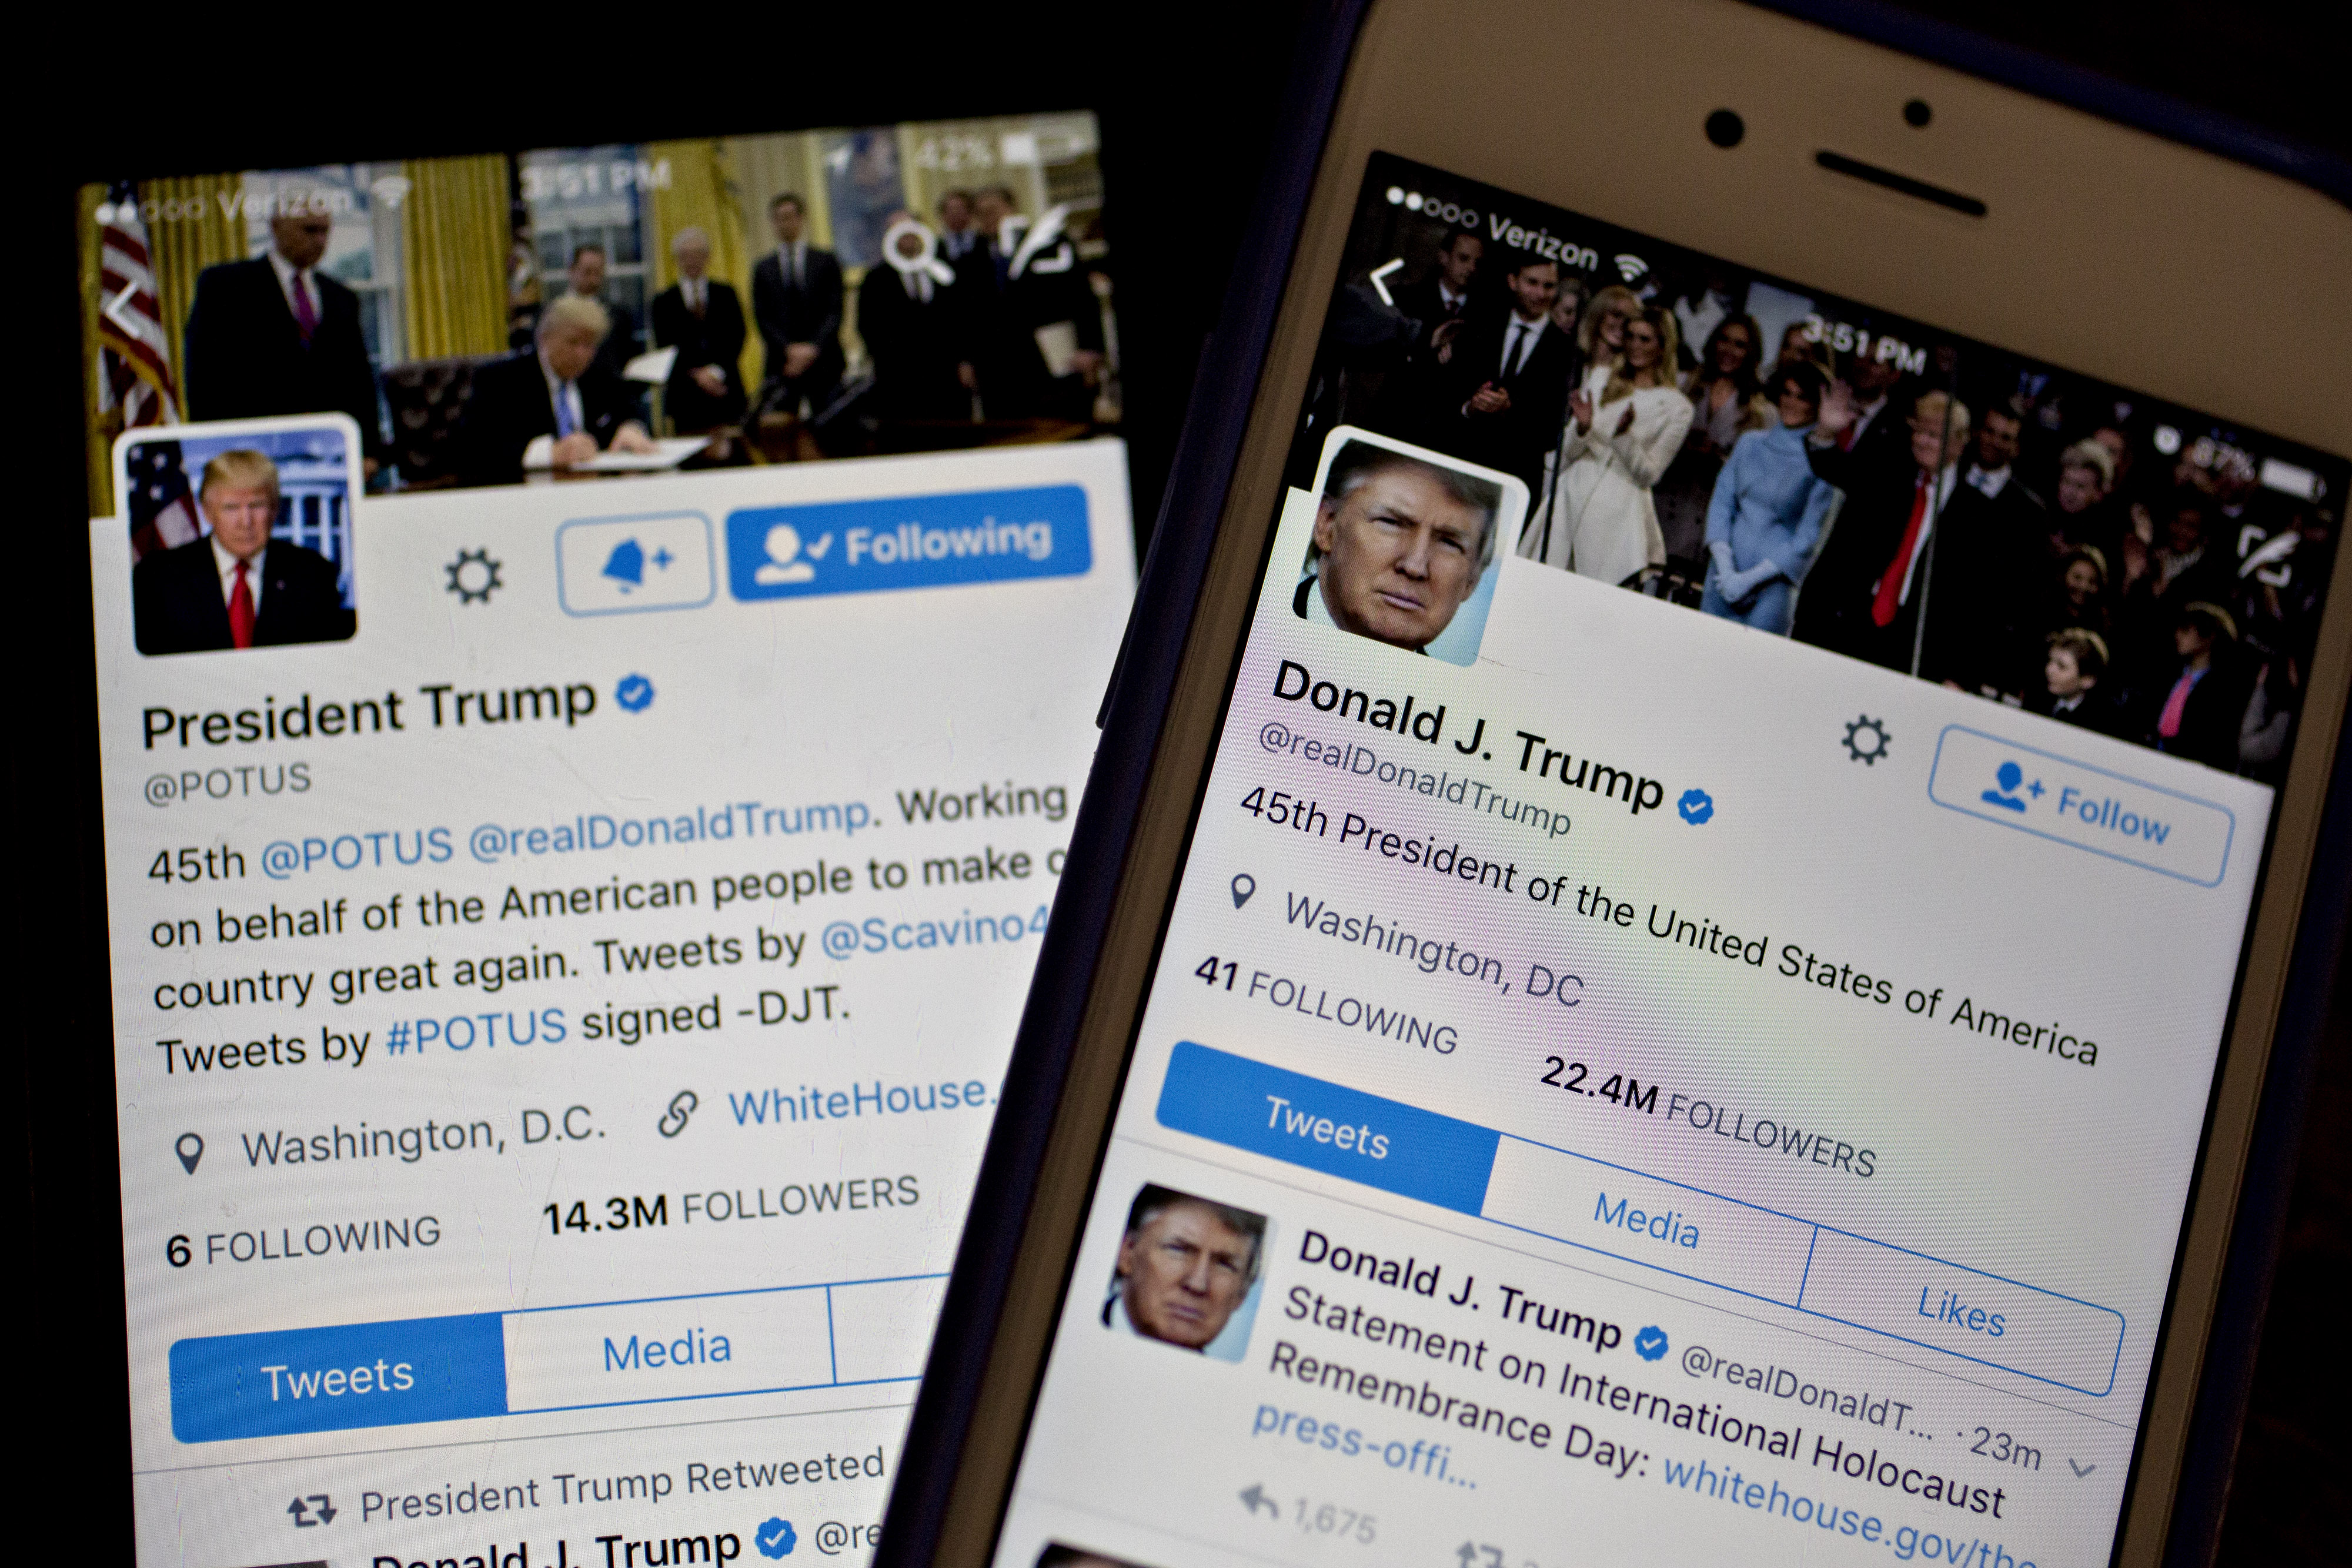 The Twitter accounts of Donald Trump, @POTUS and @realDoanldTrump.